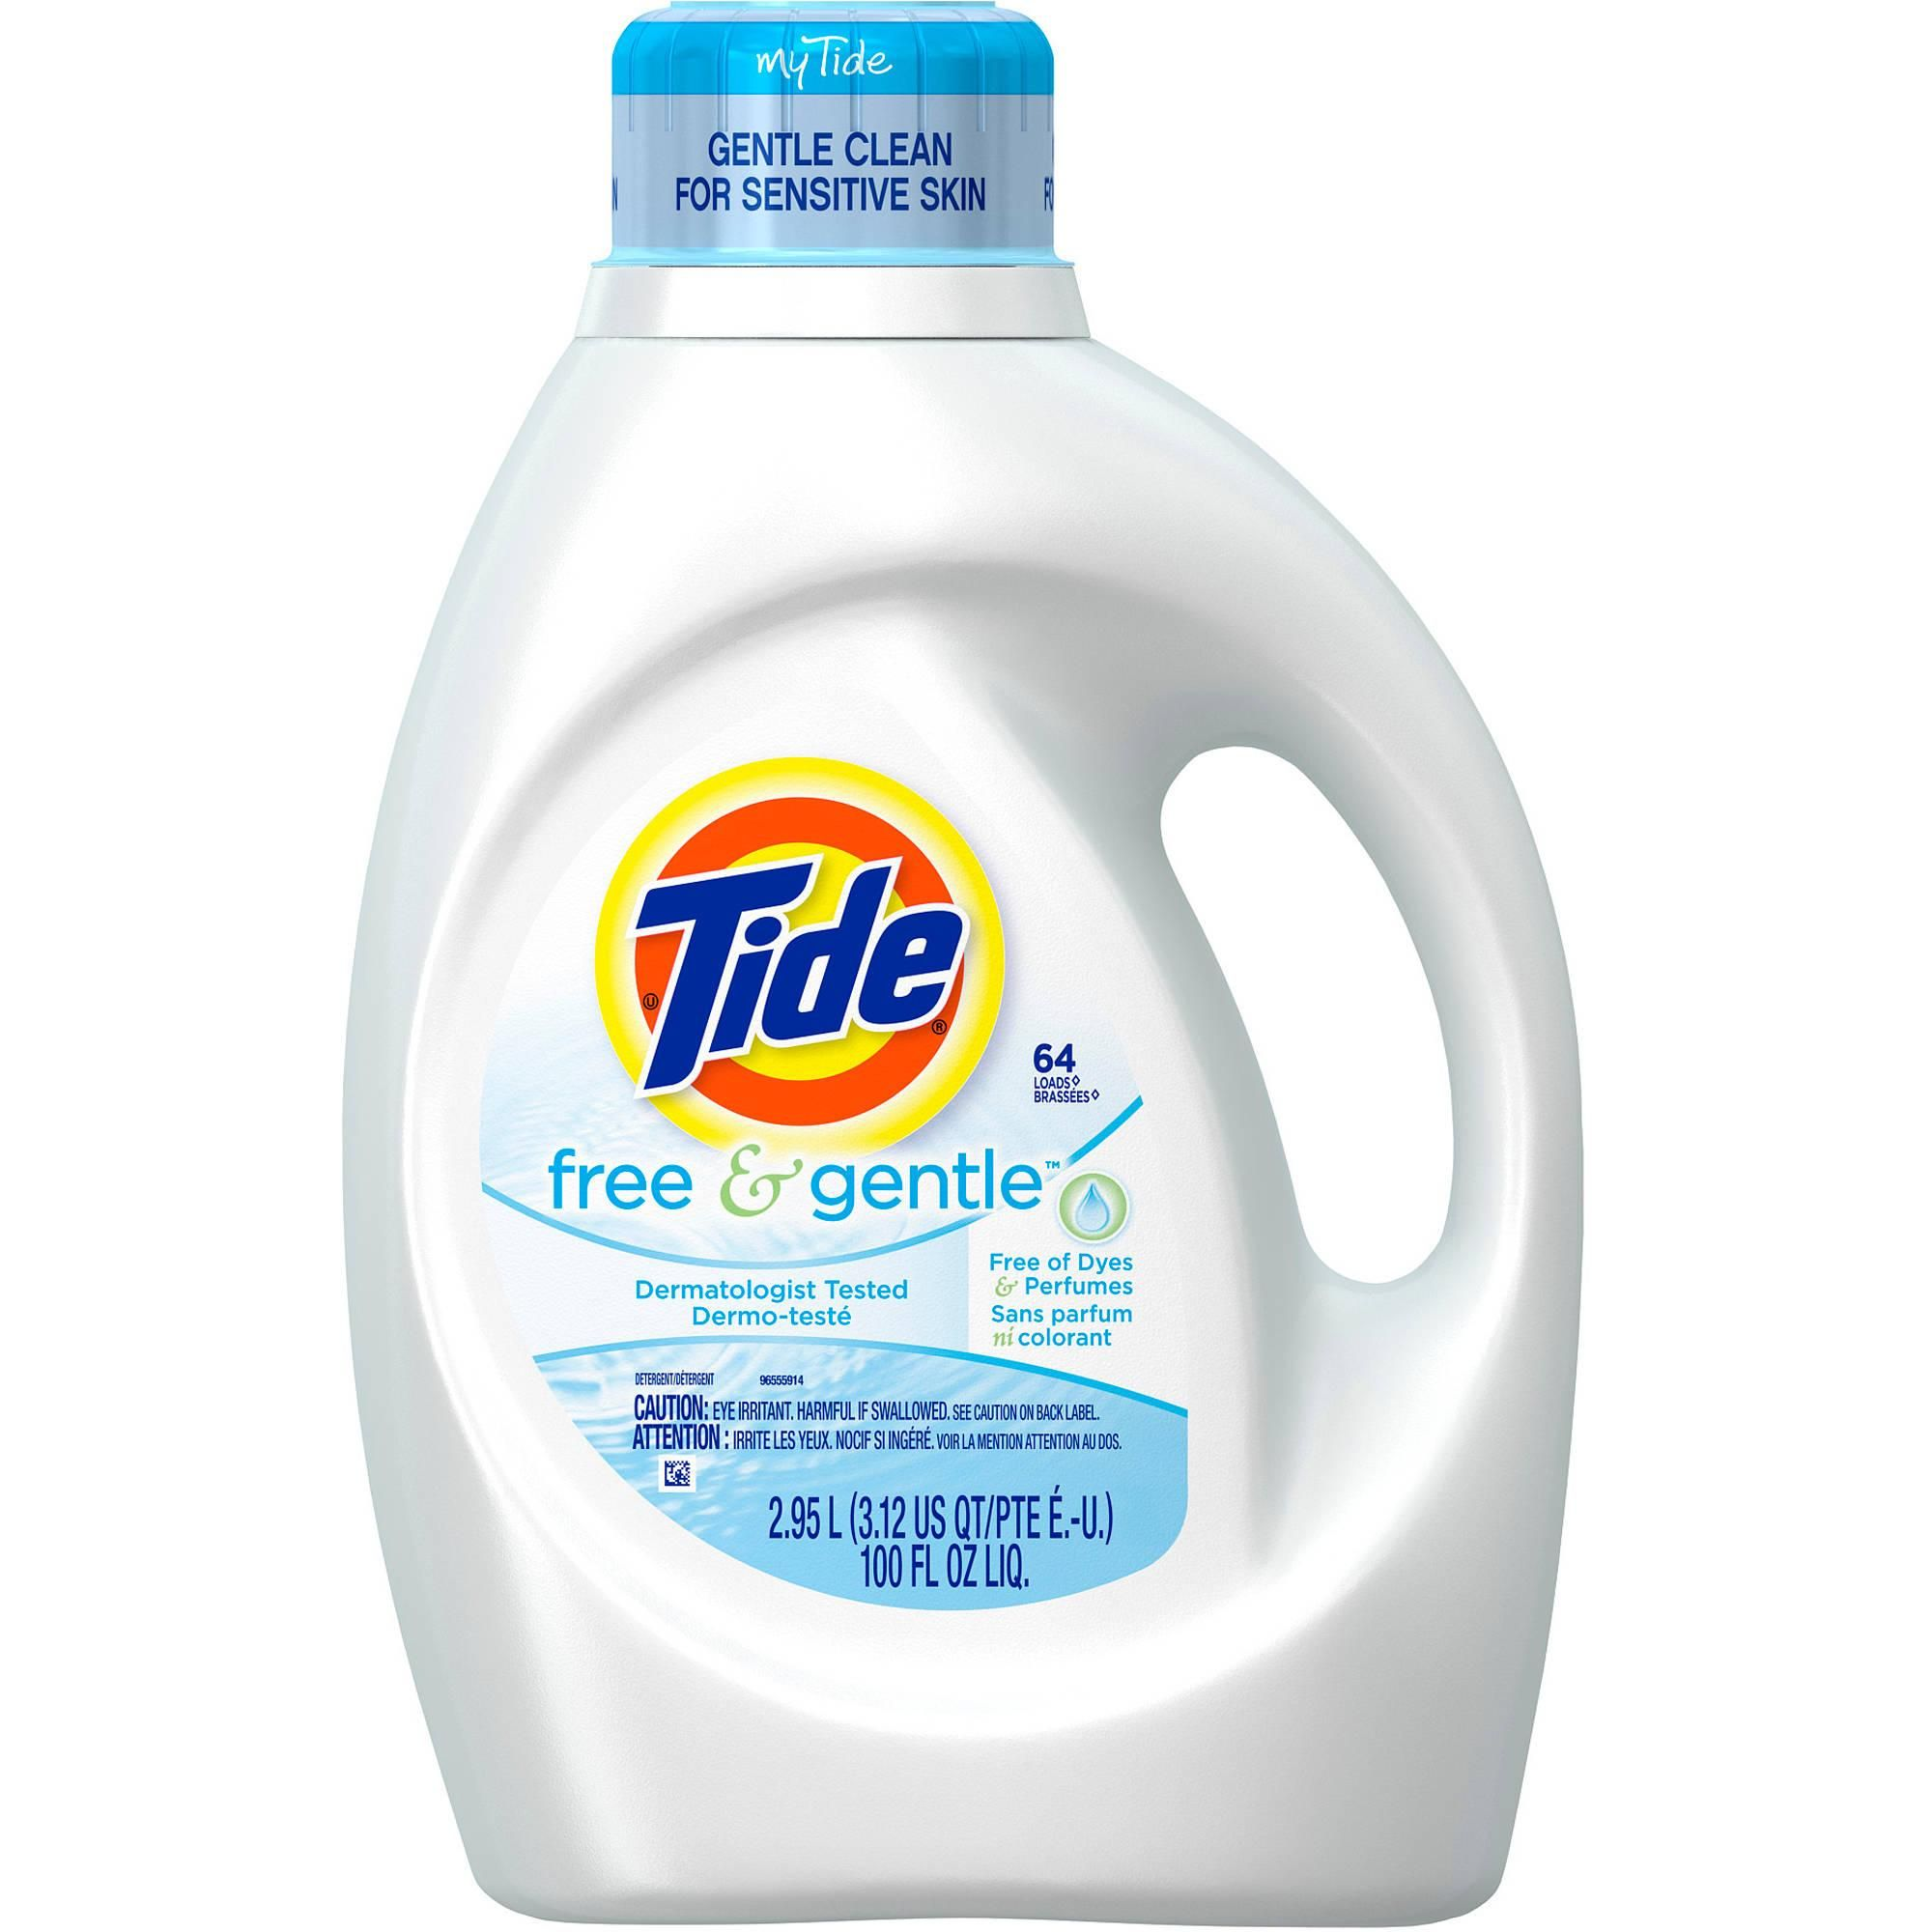 Tide Free Amp Gentle Laundry Detergent Packaging Cleaning